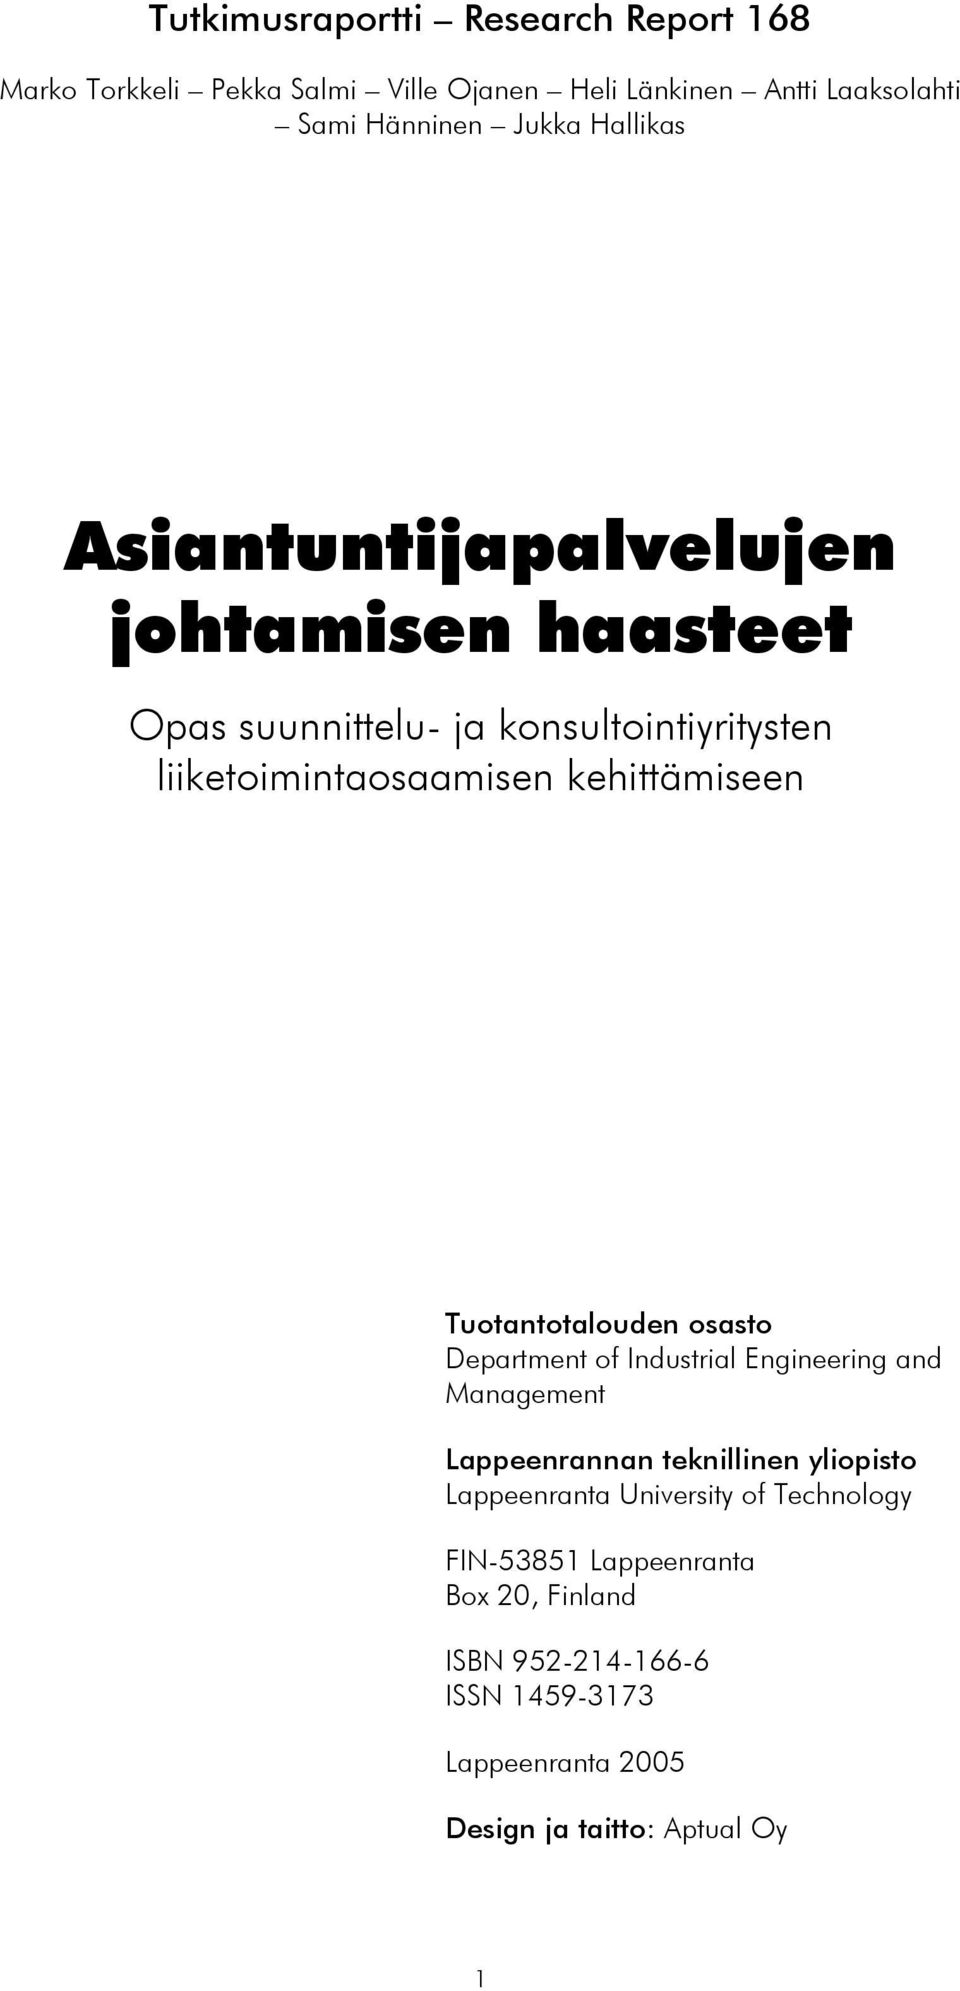 Tuotantotalouden osasto Department of Industrial Engineering and Management Lappeenrannan teknillinen yliopisto Lappeenranta